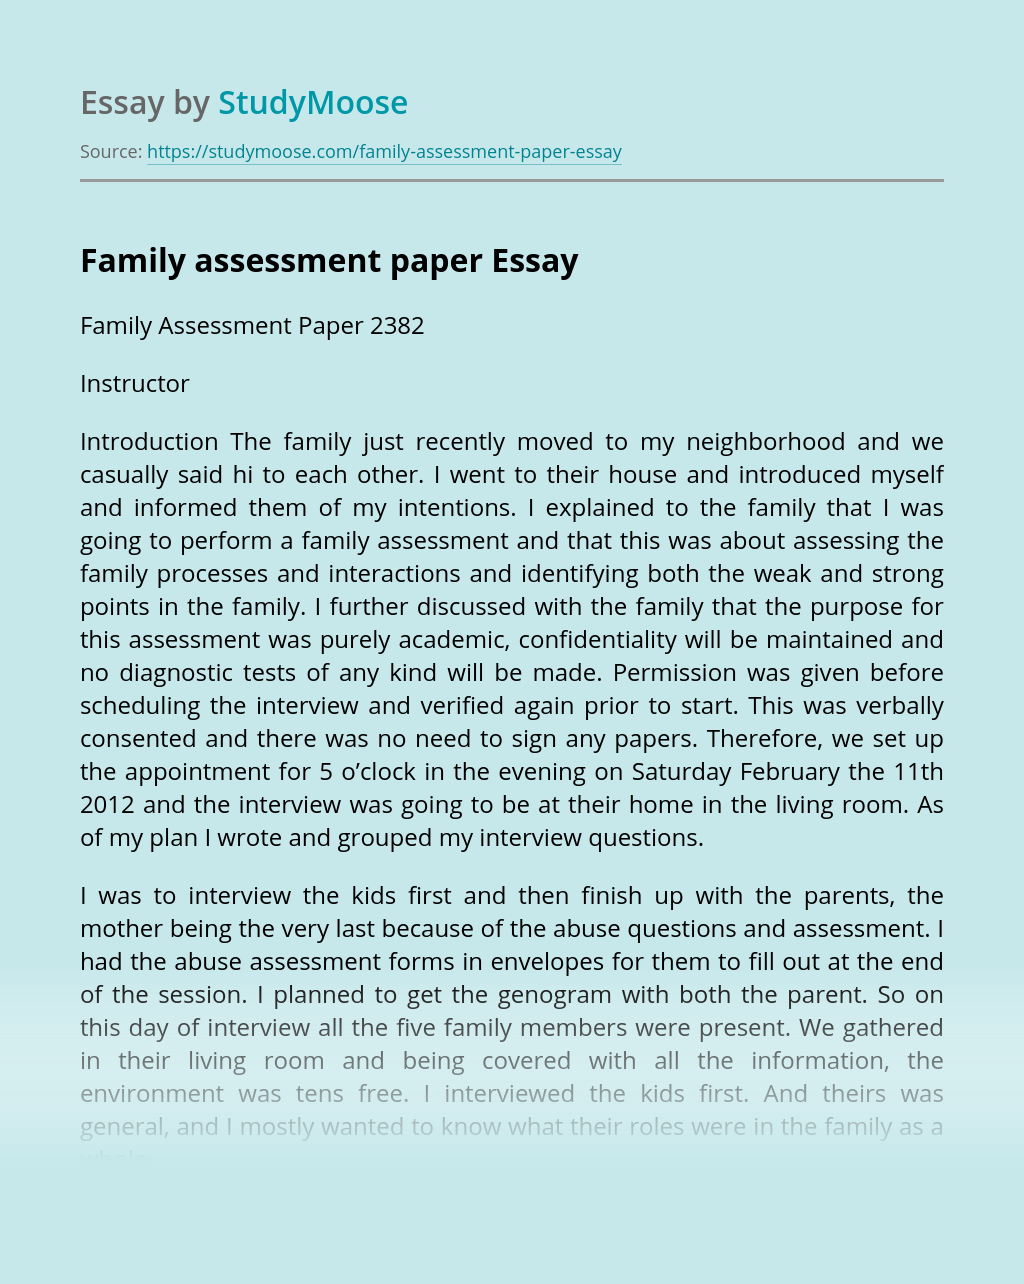 Family assessment paper